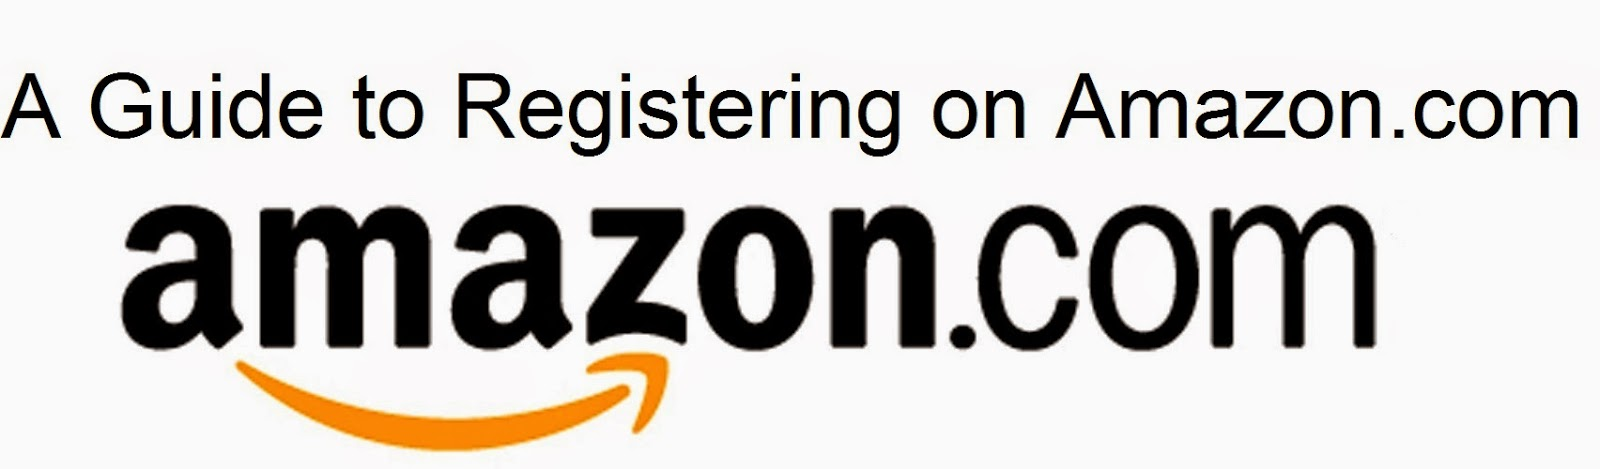 A Guide to Registering on Amazon.com : eAskme